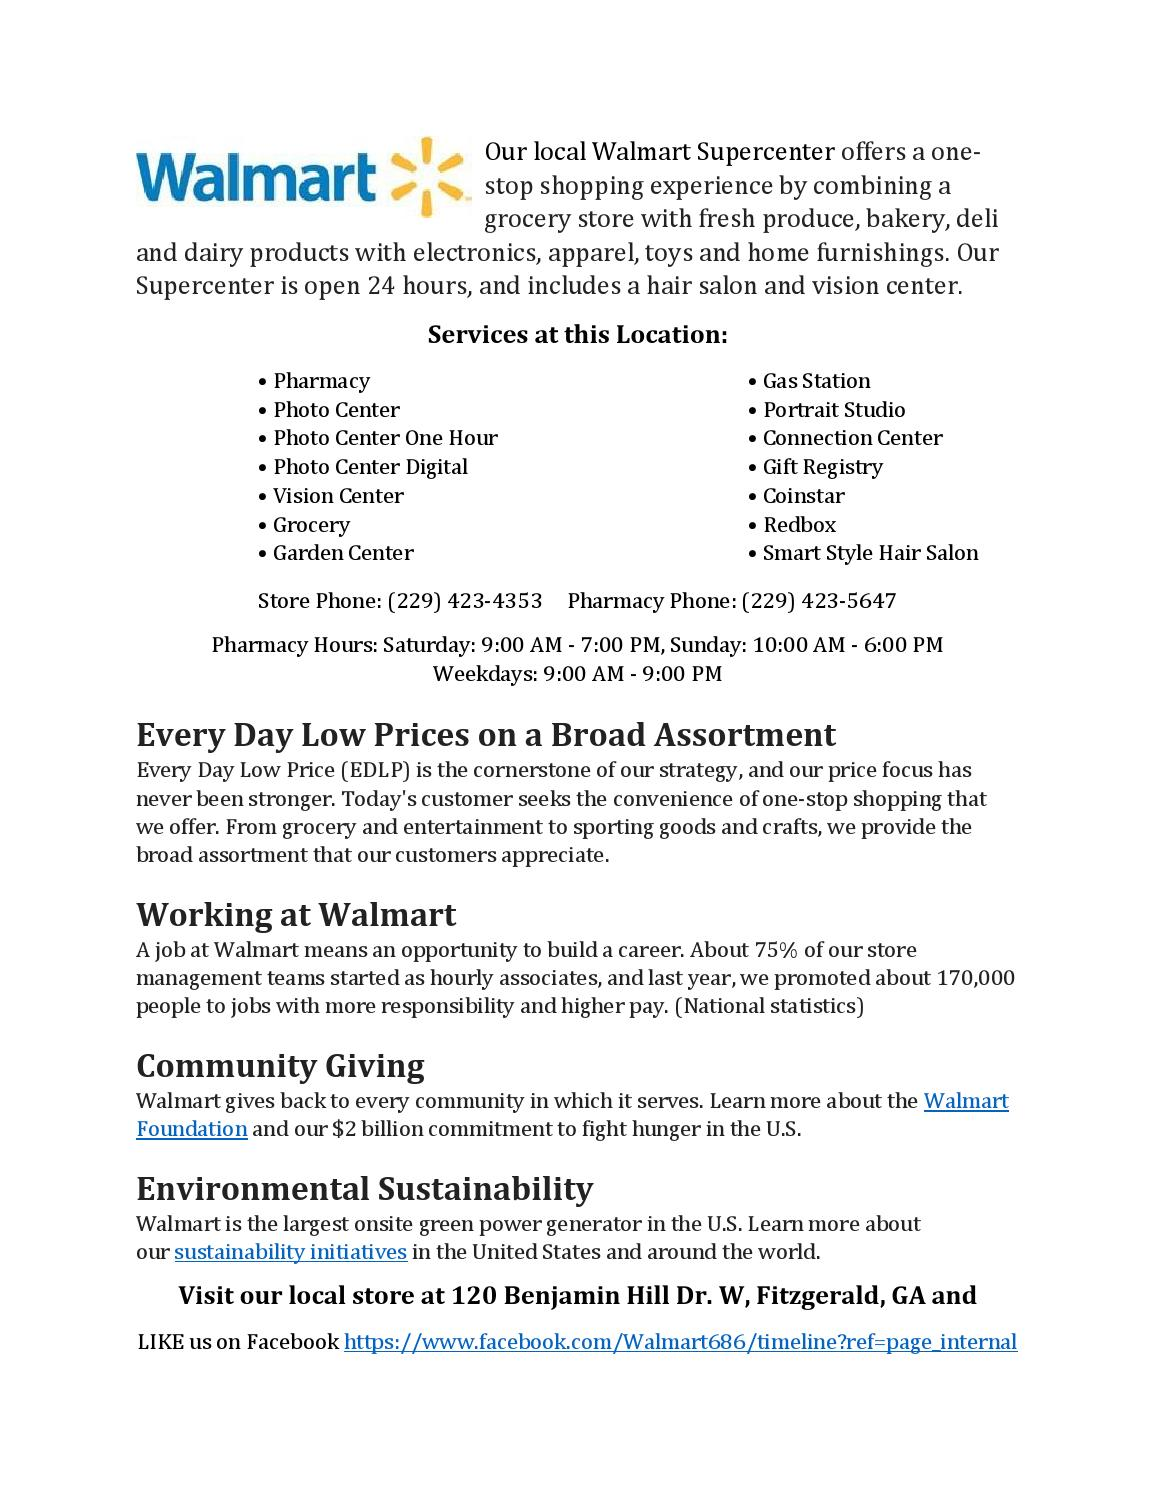 Walmart By Fitzgerald Ben Hill Chamber Of Commerce